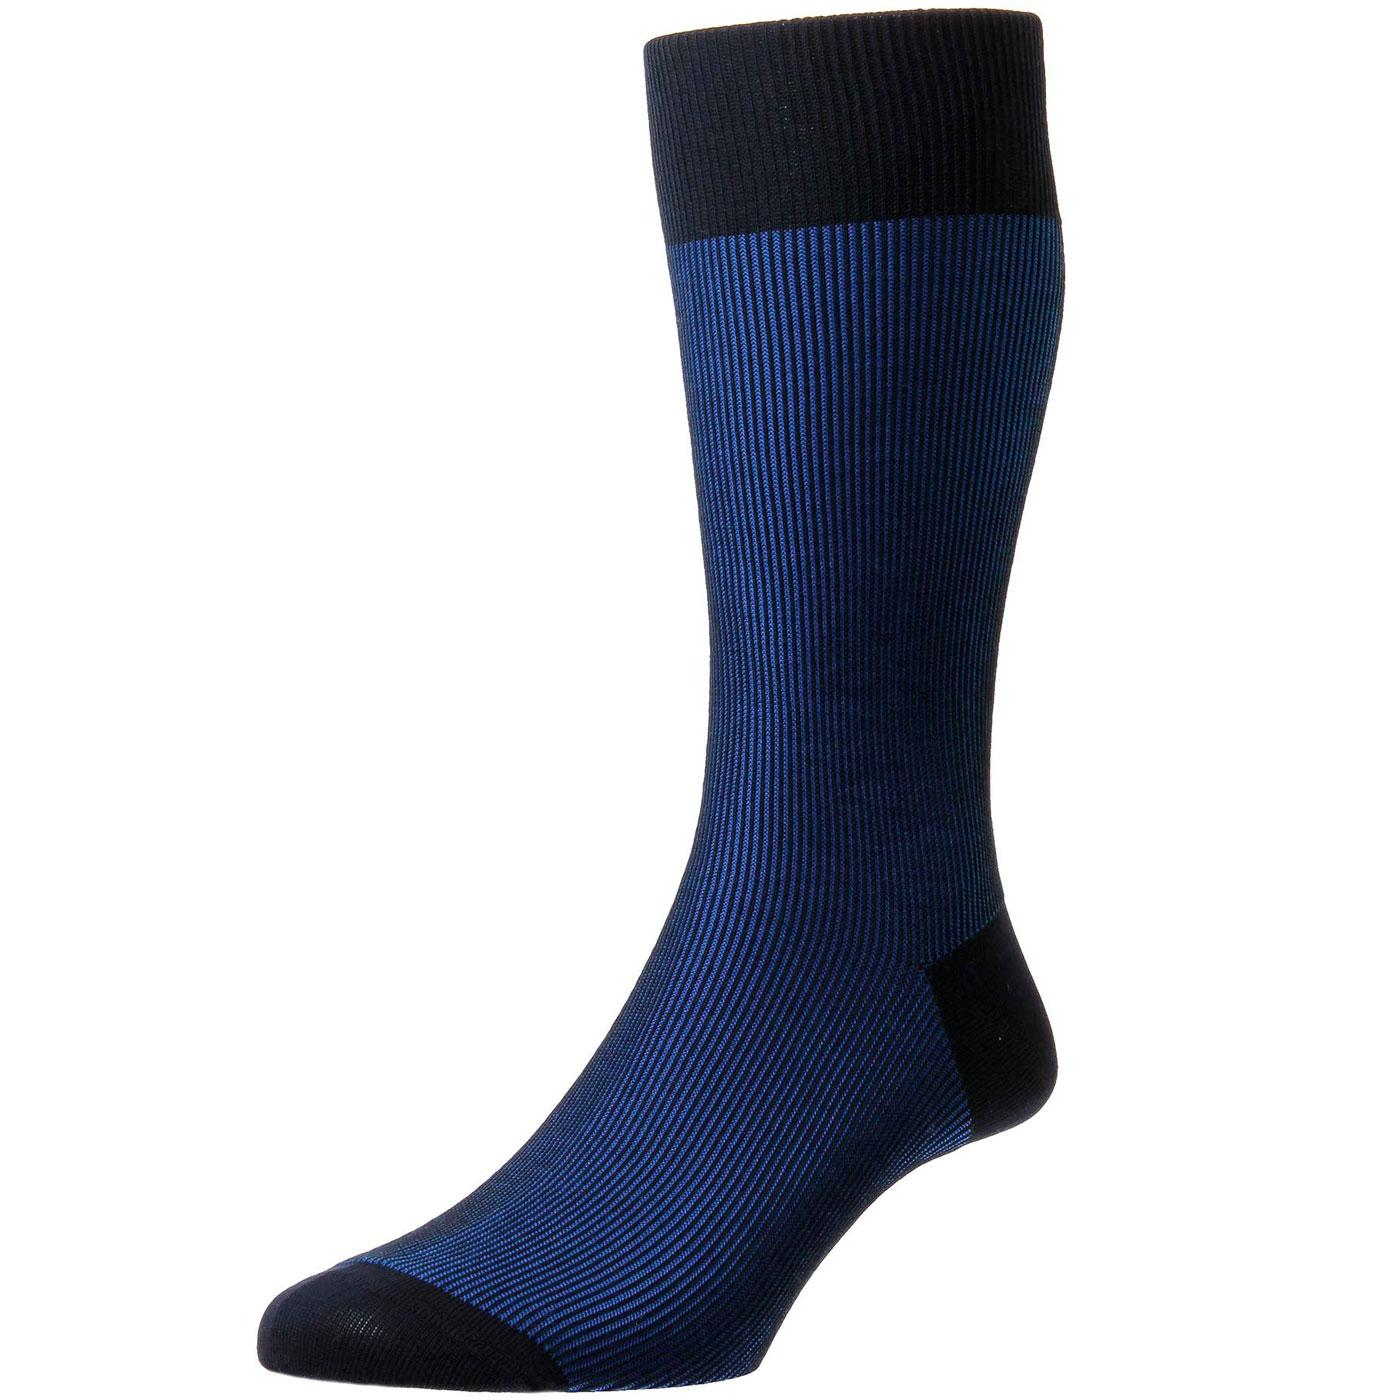 + Santos PANTHERELLA Retro Tonic Effect Socks N/RB